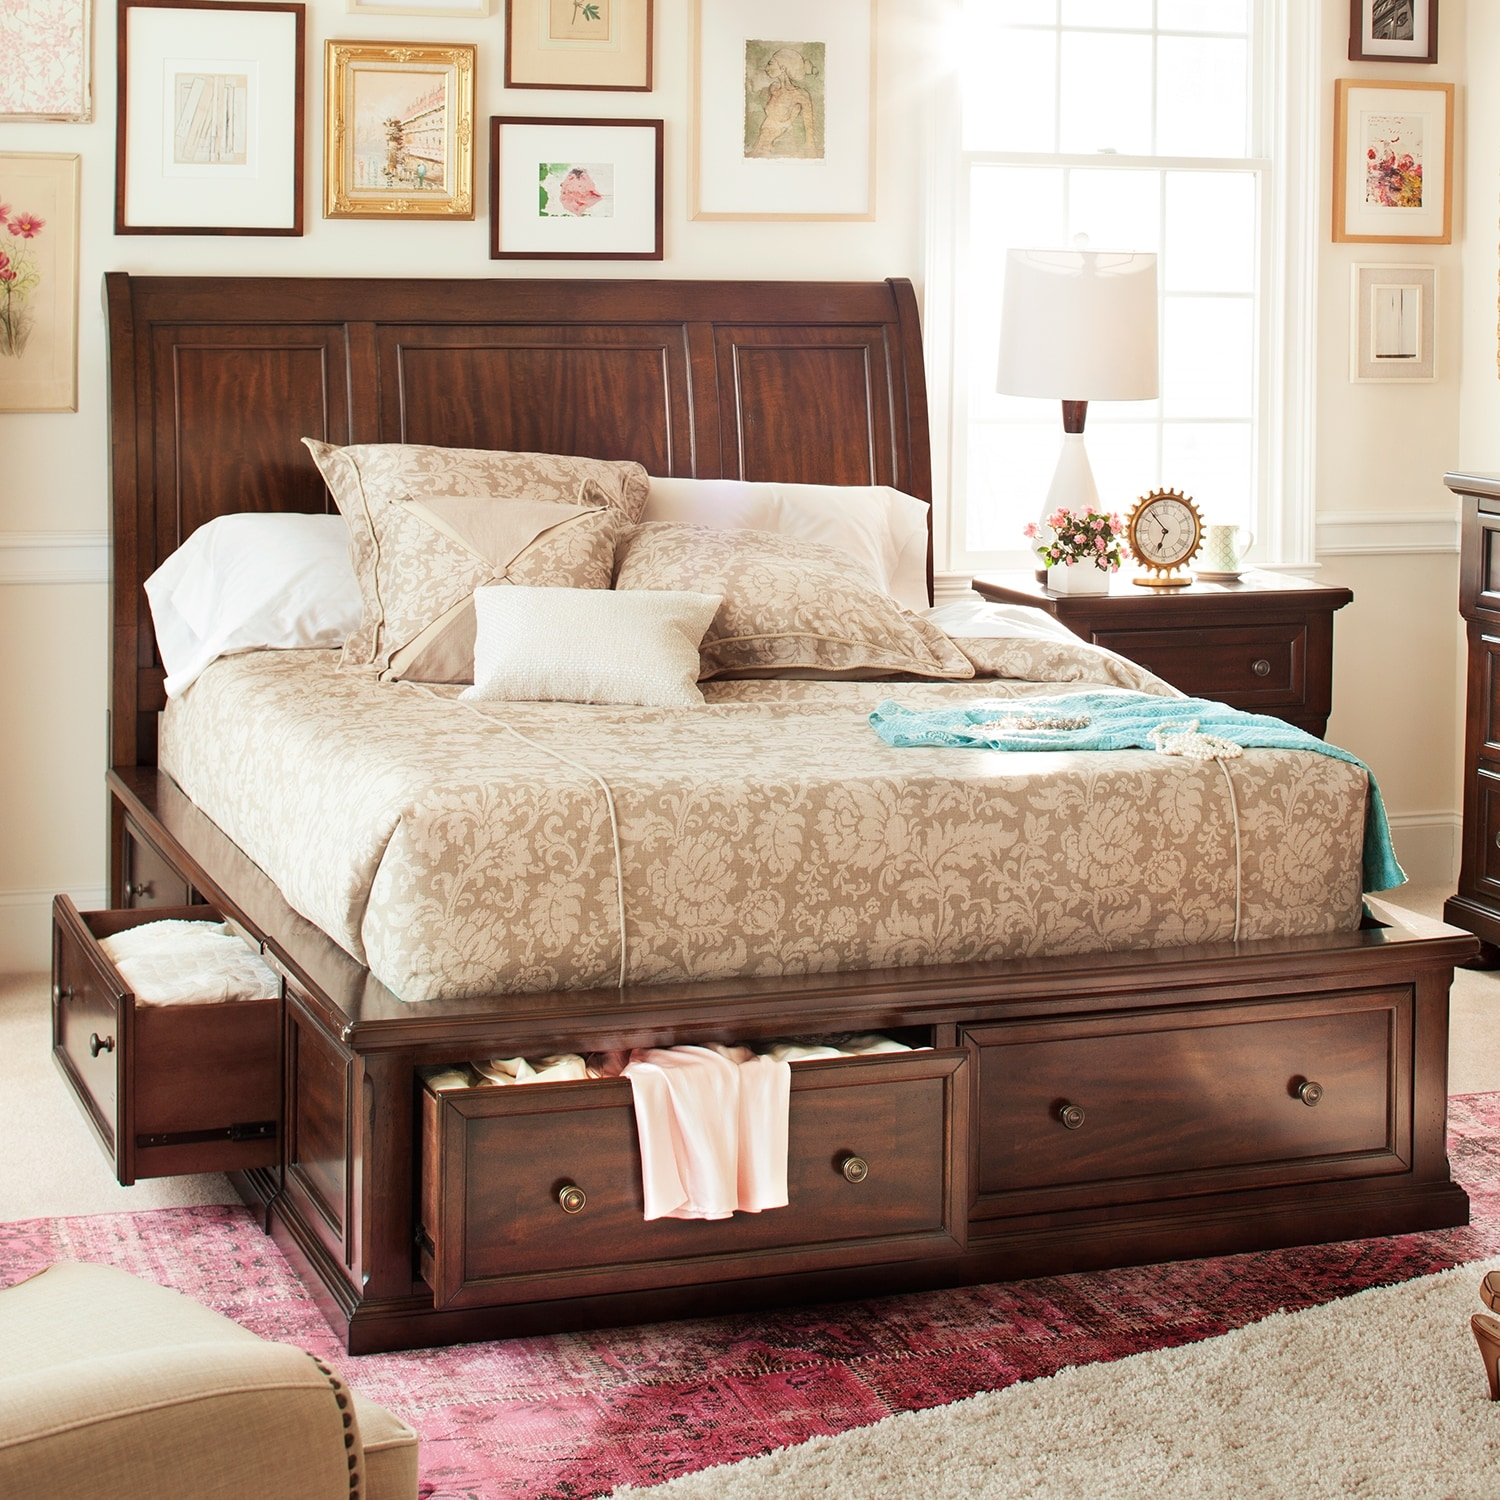 King storage beds with drawers - Click To Change Image